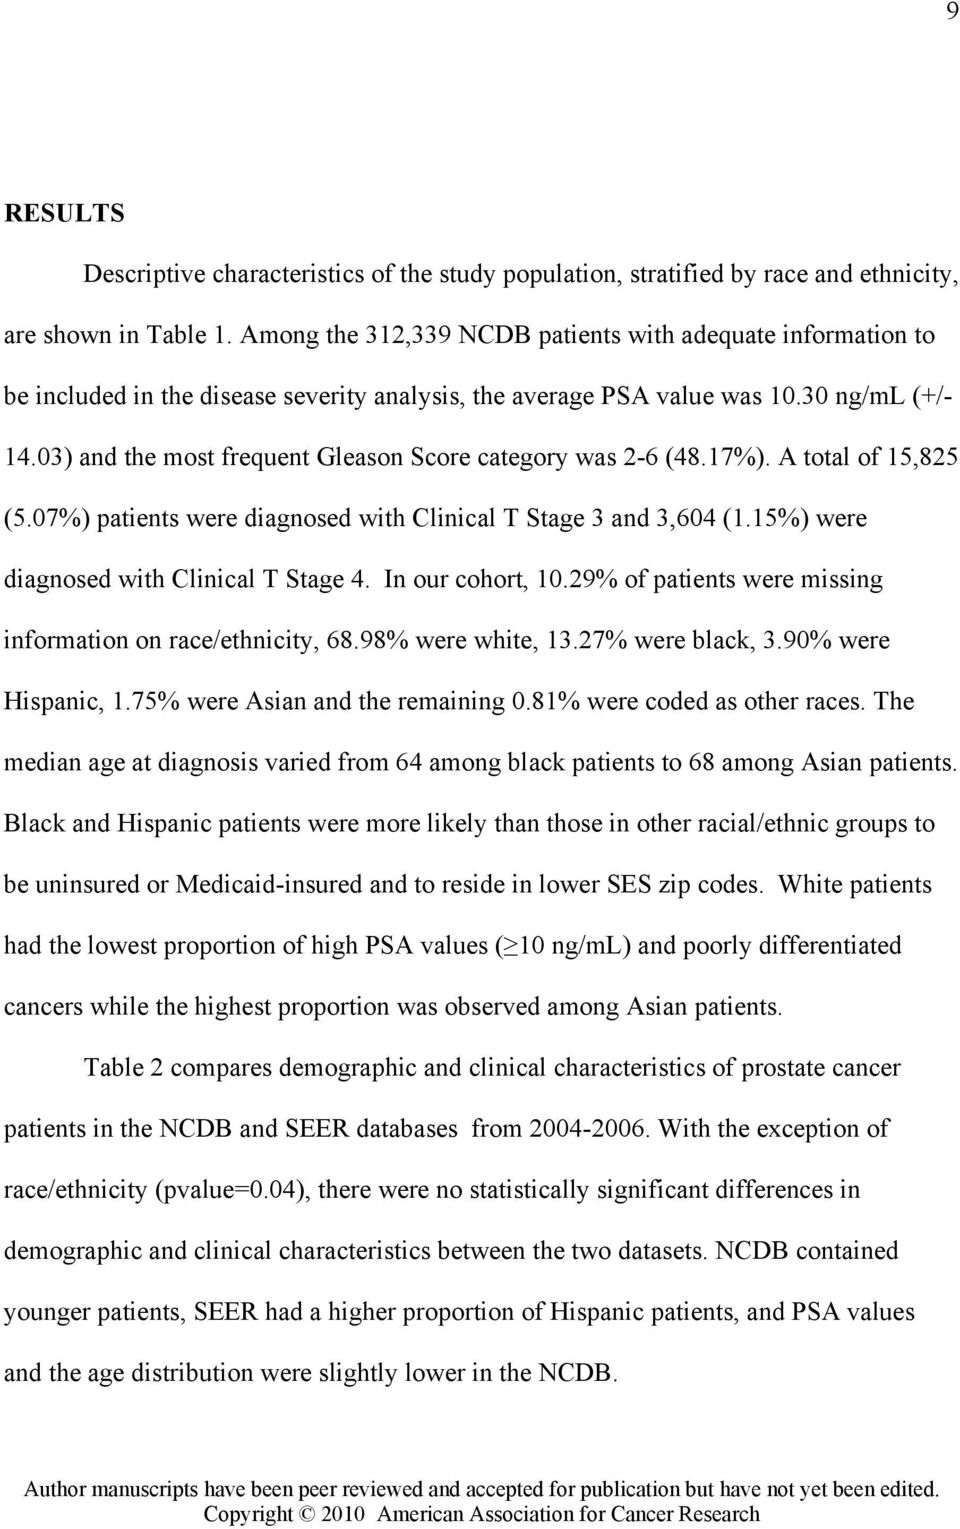 03) and the most frequent Gleason Score category was 2-6 (48.17%). A total of 15,825 (5.07%) patients were diagnosed with Clinical T Stage 3 and 3,604 (1.15%) were diagnosed with Clinical T Stage 4.